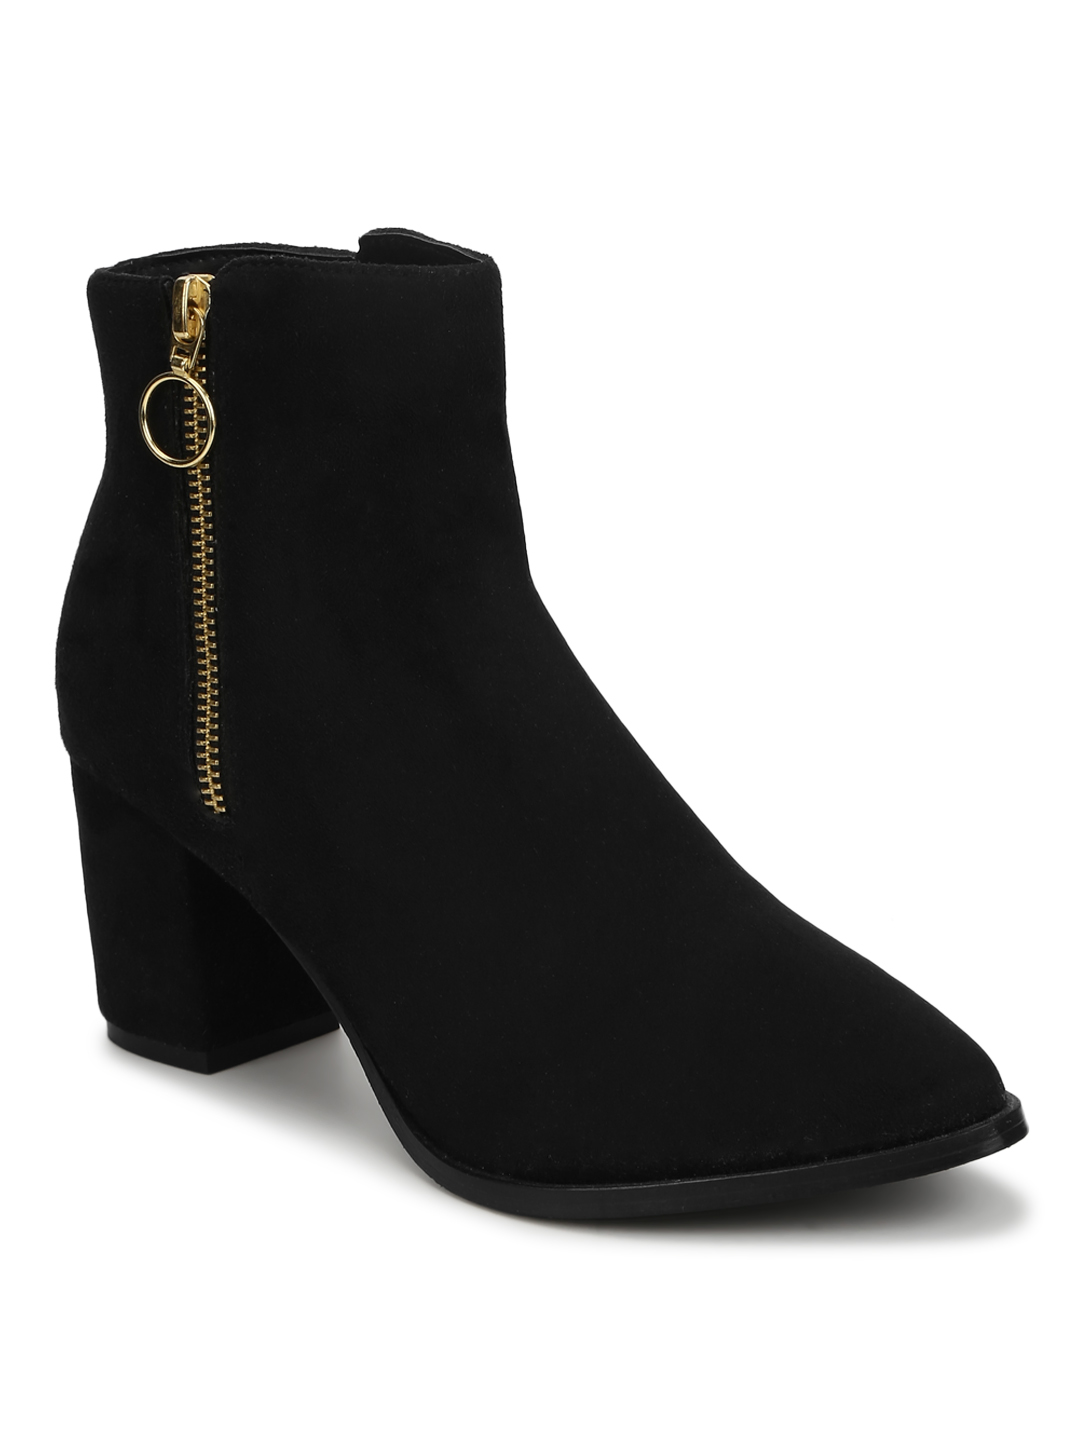 Truffle Collection | Truffle Collection Black Suede Zip Up Ankle Boots